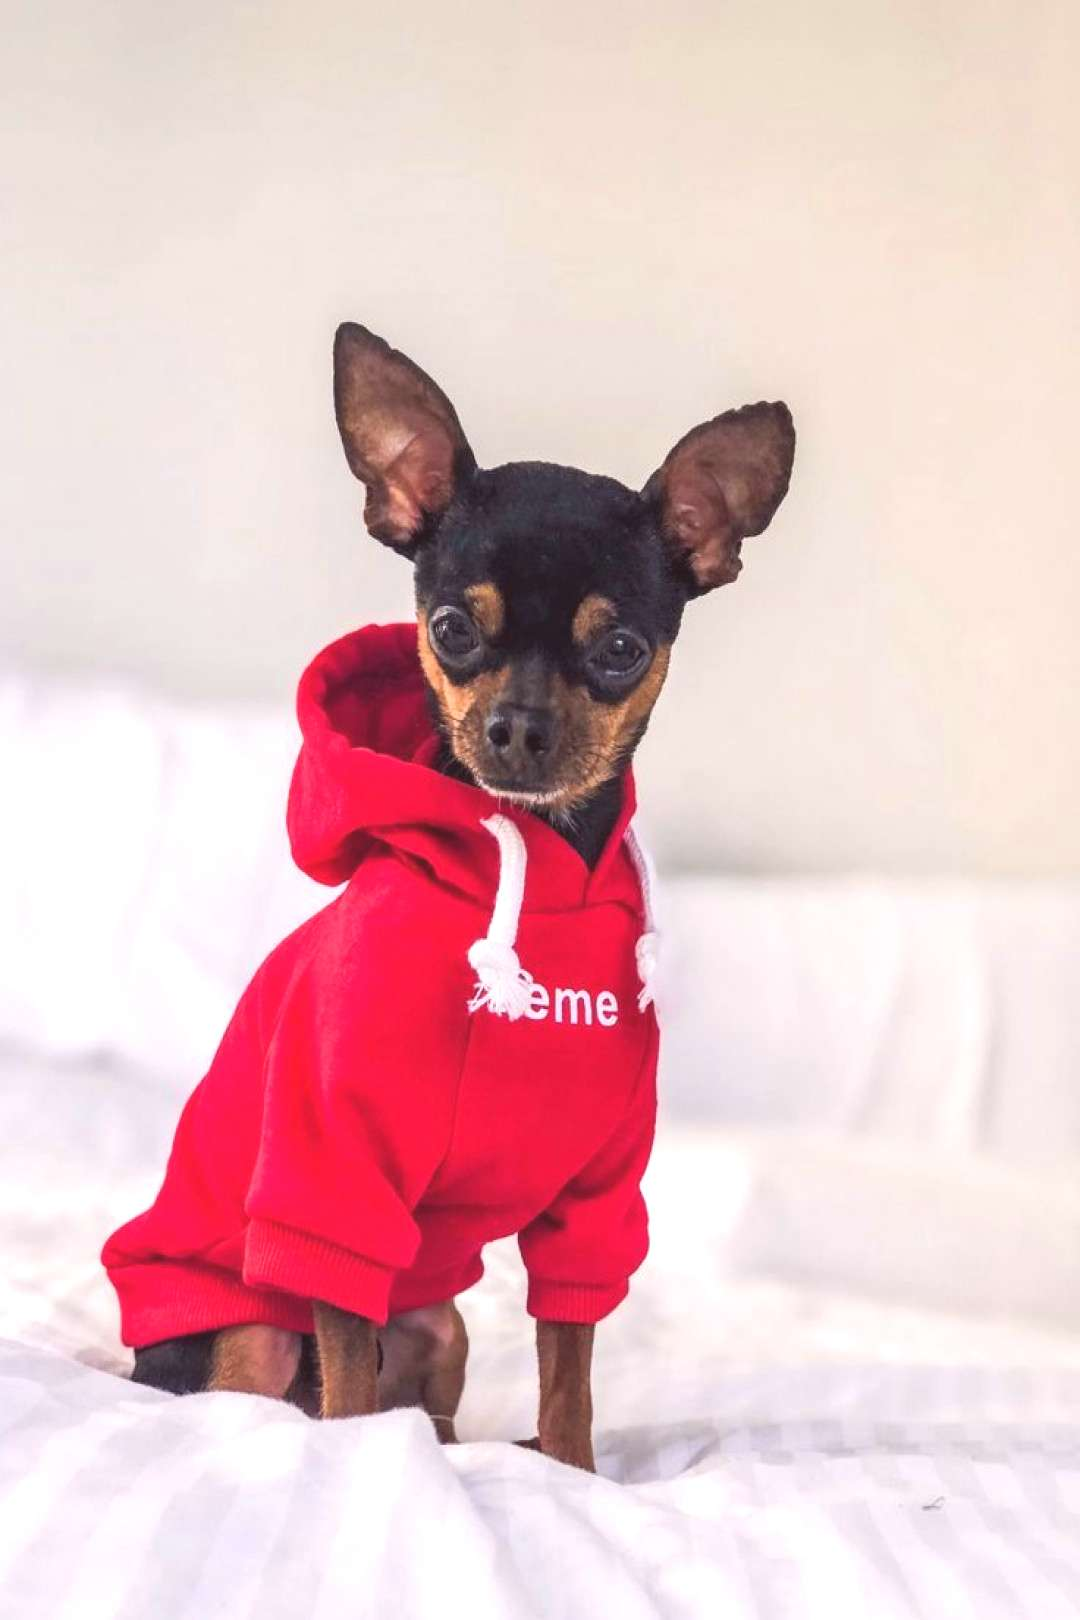 Furbaby Couture - Pet Boutique | Premium Dog Apparel and Fashion We are giving away the first 50 ca